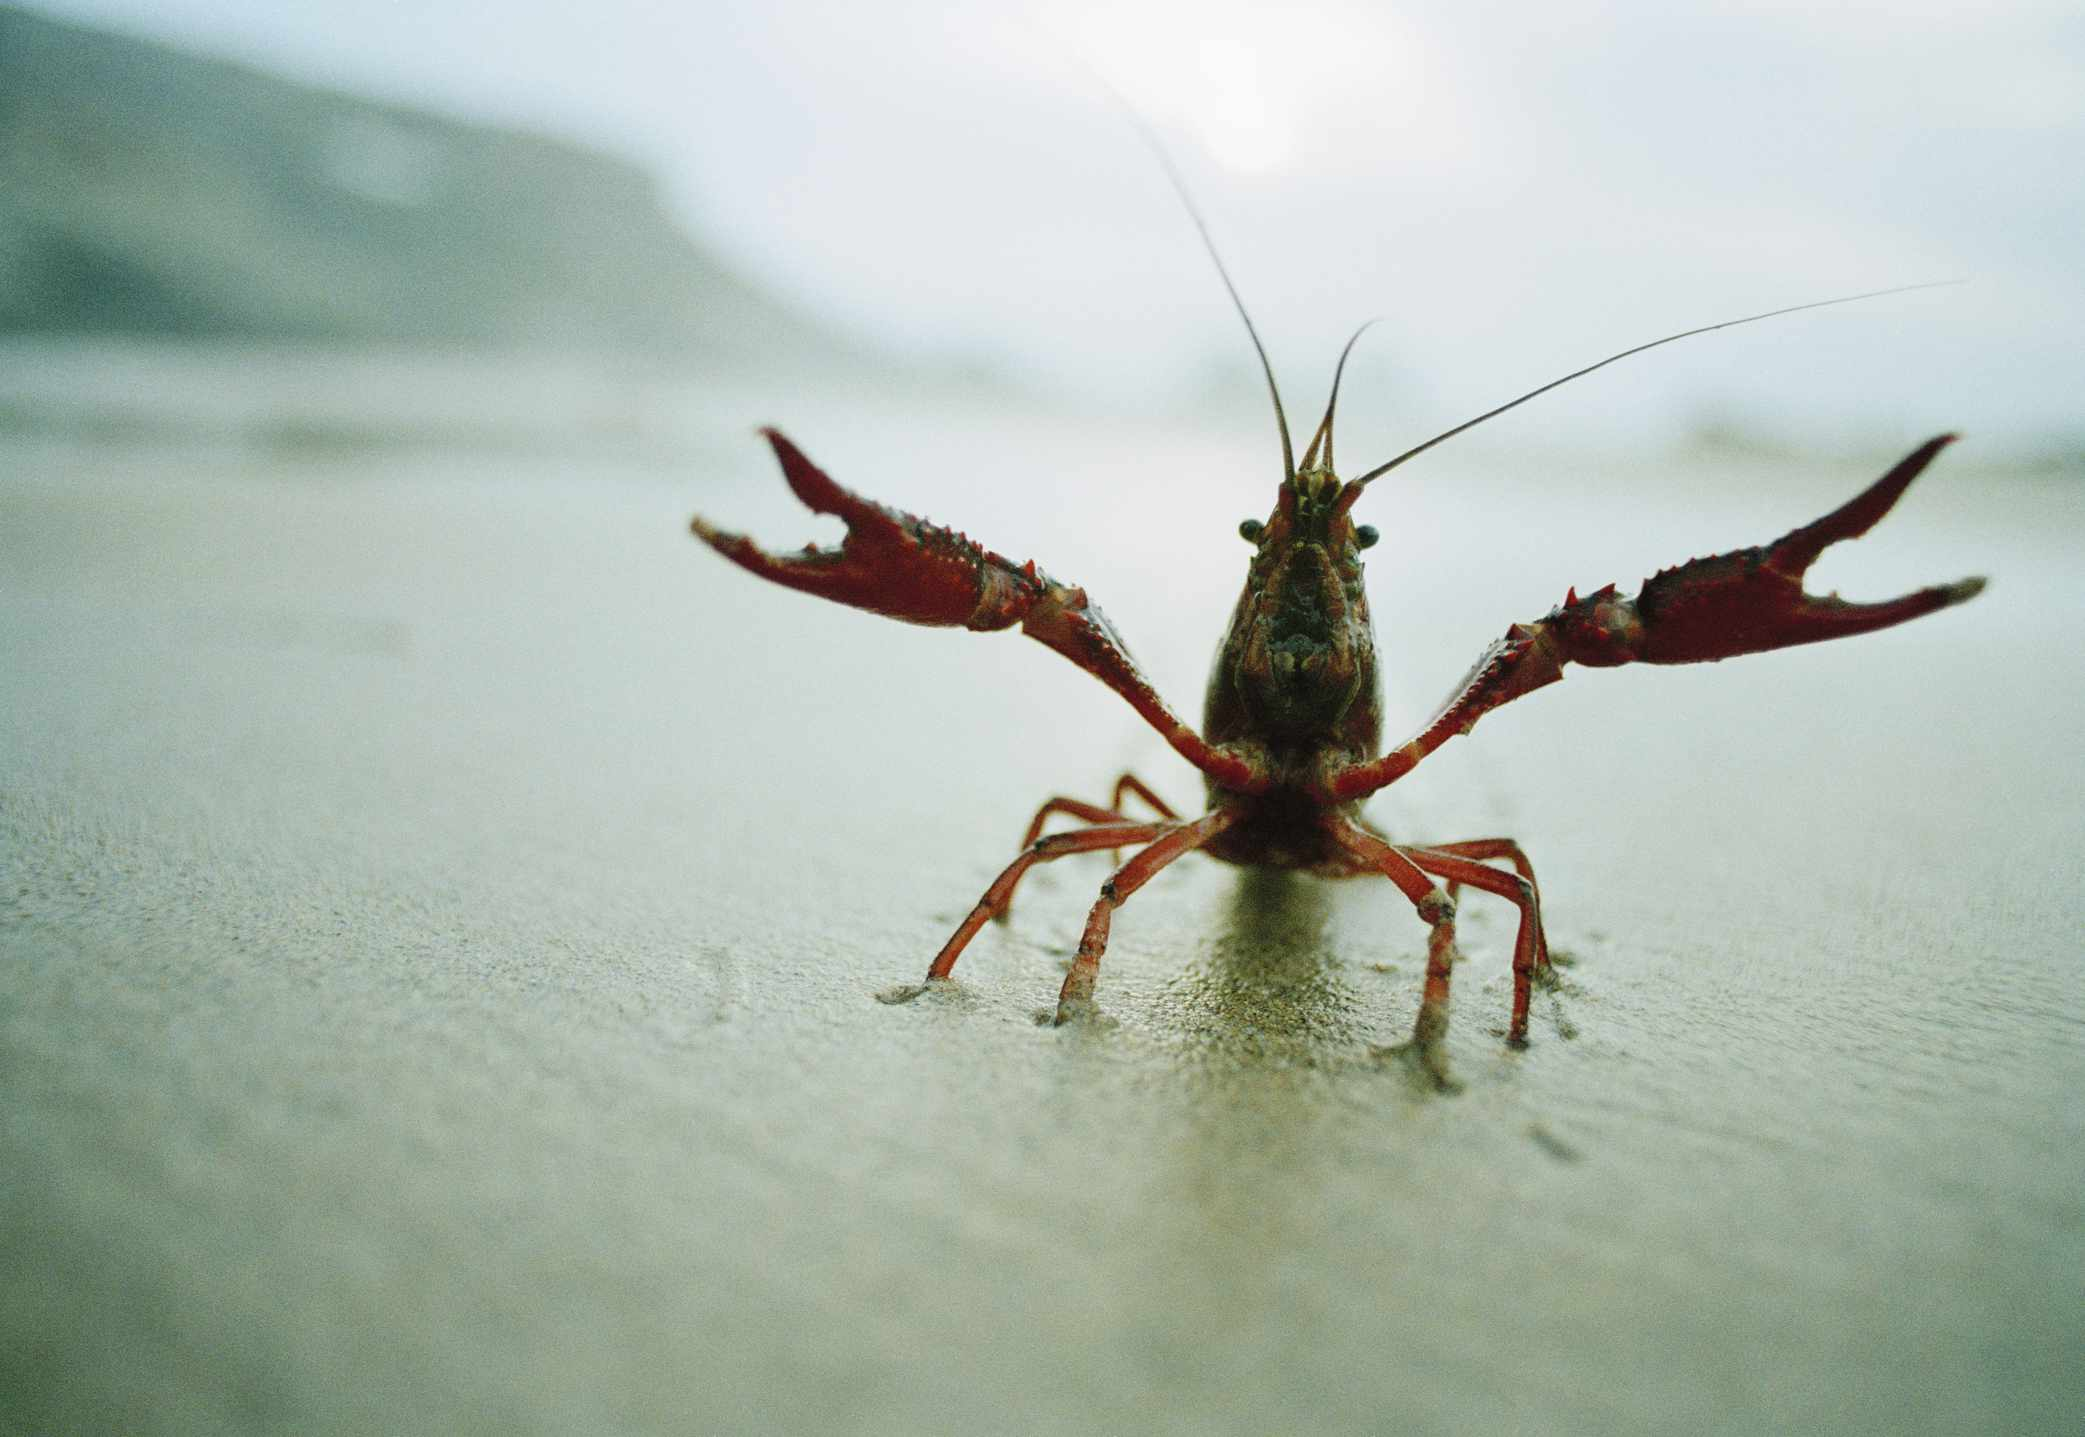 A crayfish walking on a beach with claws extended outward.